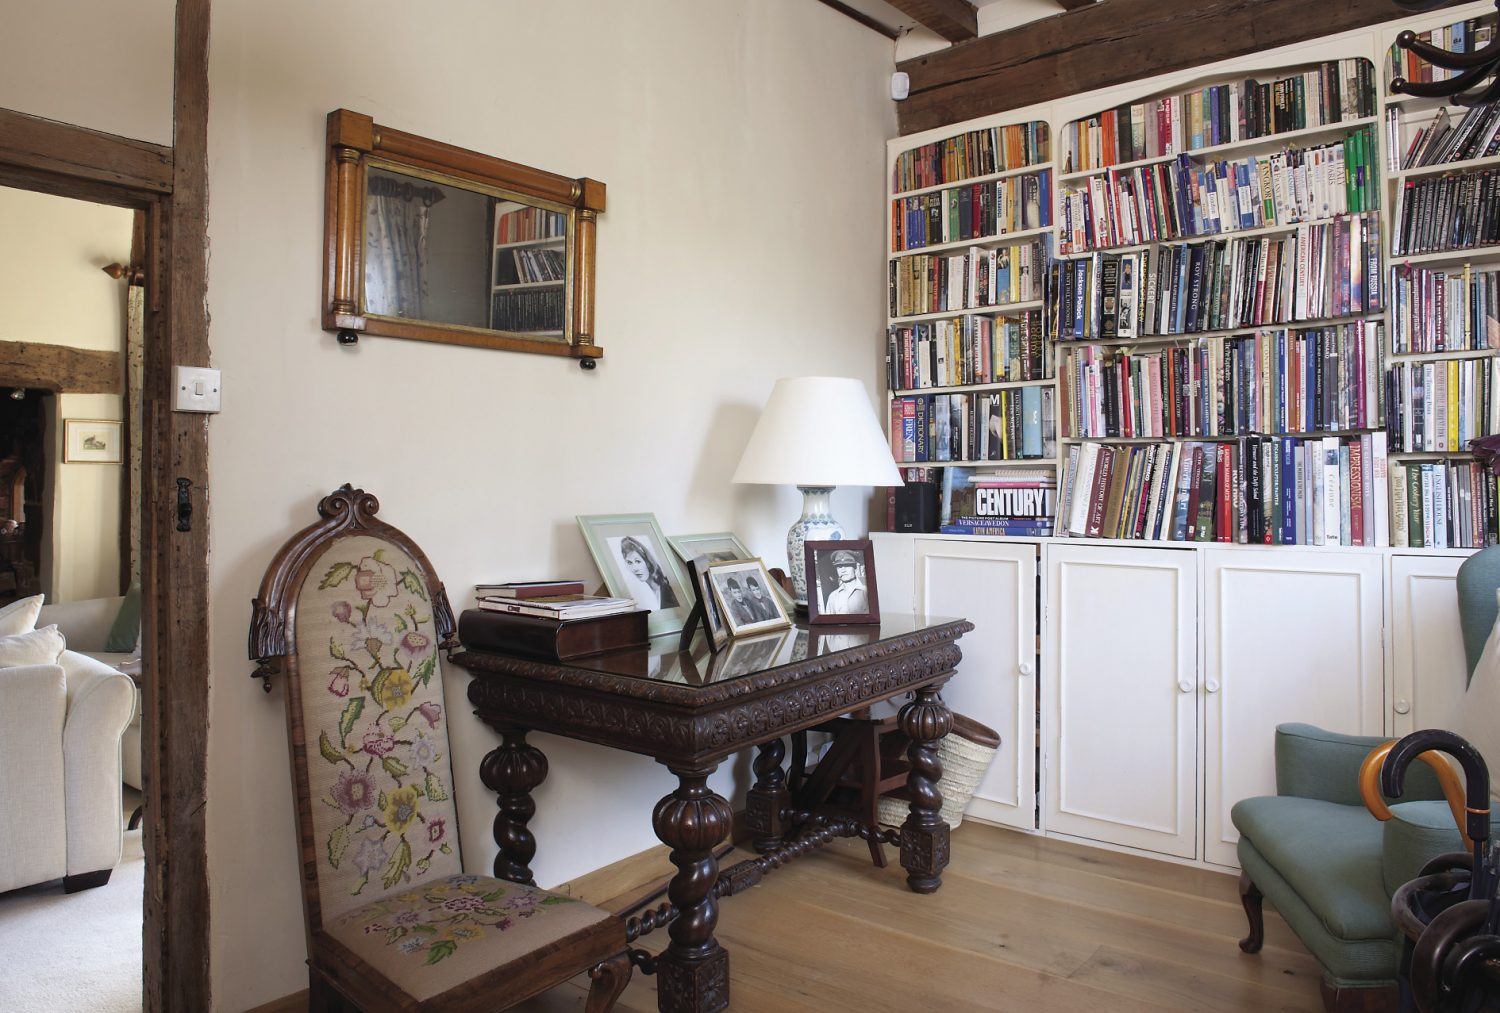 Bookshelves line the walls of the study